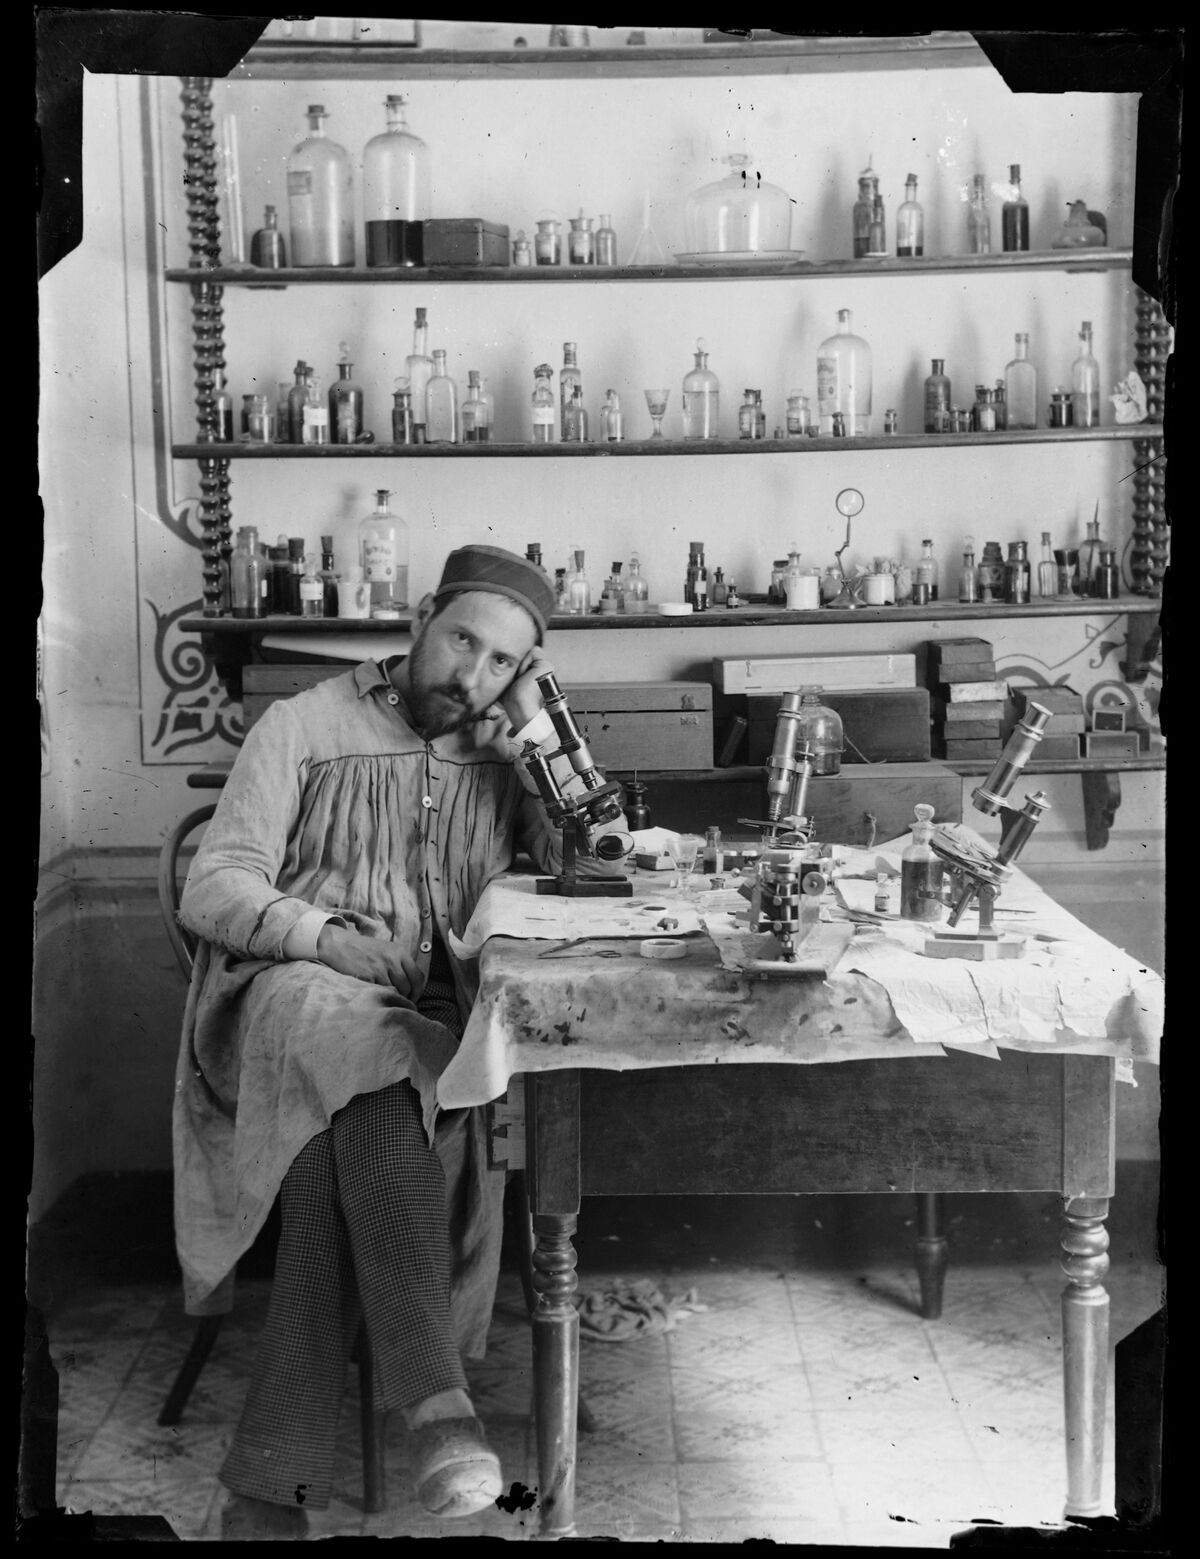 Self-portrait of Santiago Ramón y Cajal, taken by Cajal in his laboratory in Valencia when he was in his early thirties, c. 1885. Courtesy of Cajal Institute (CSIC), Madrid.